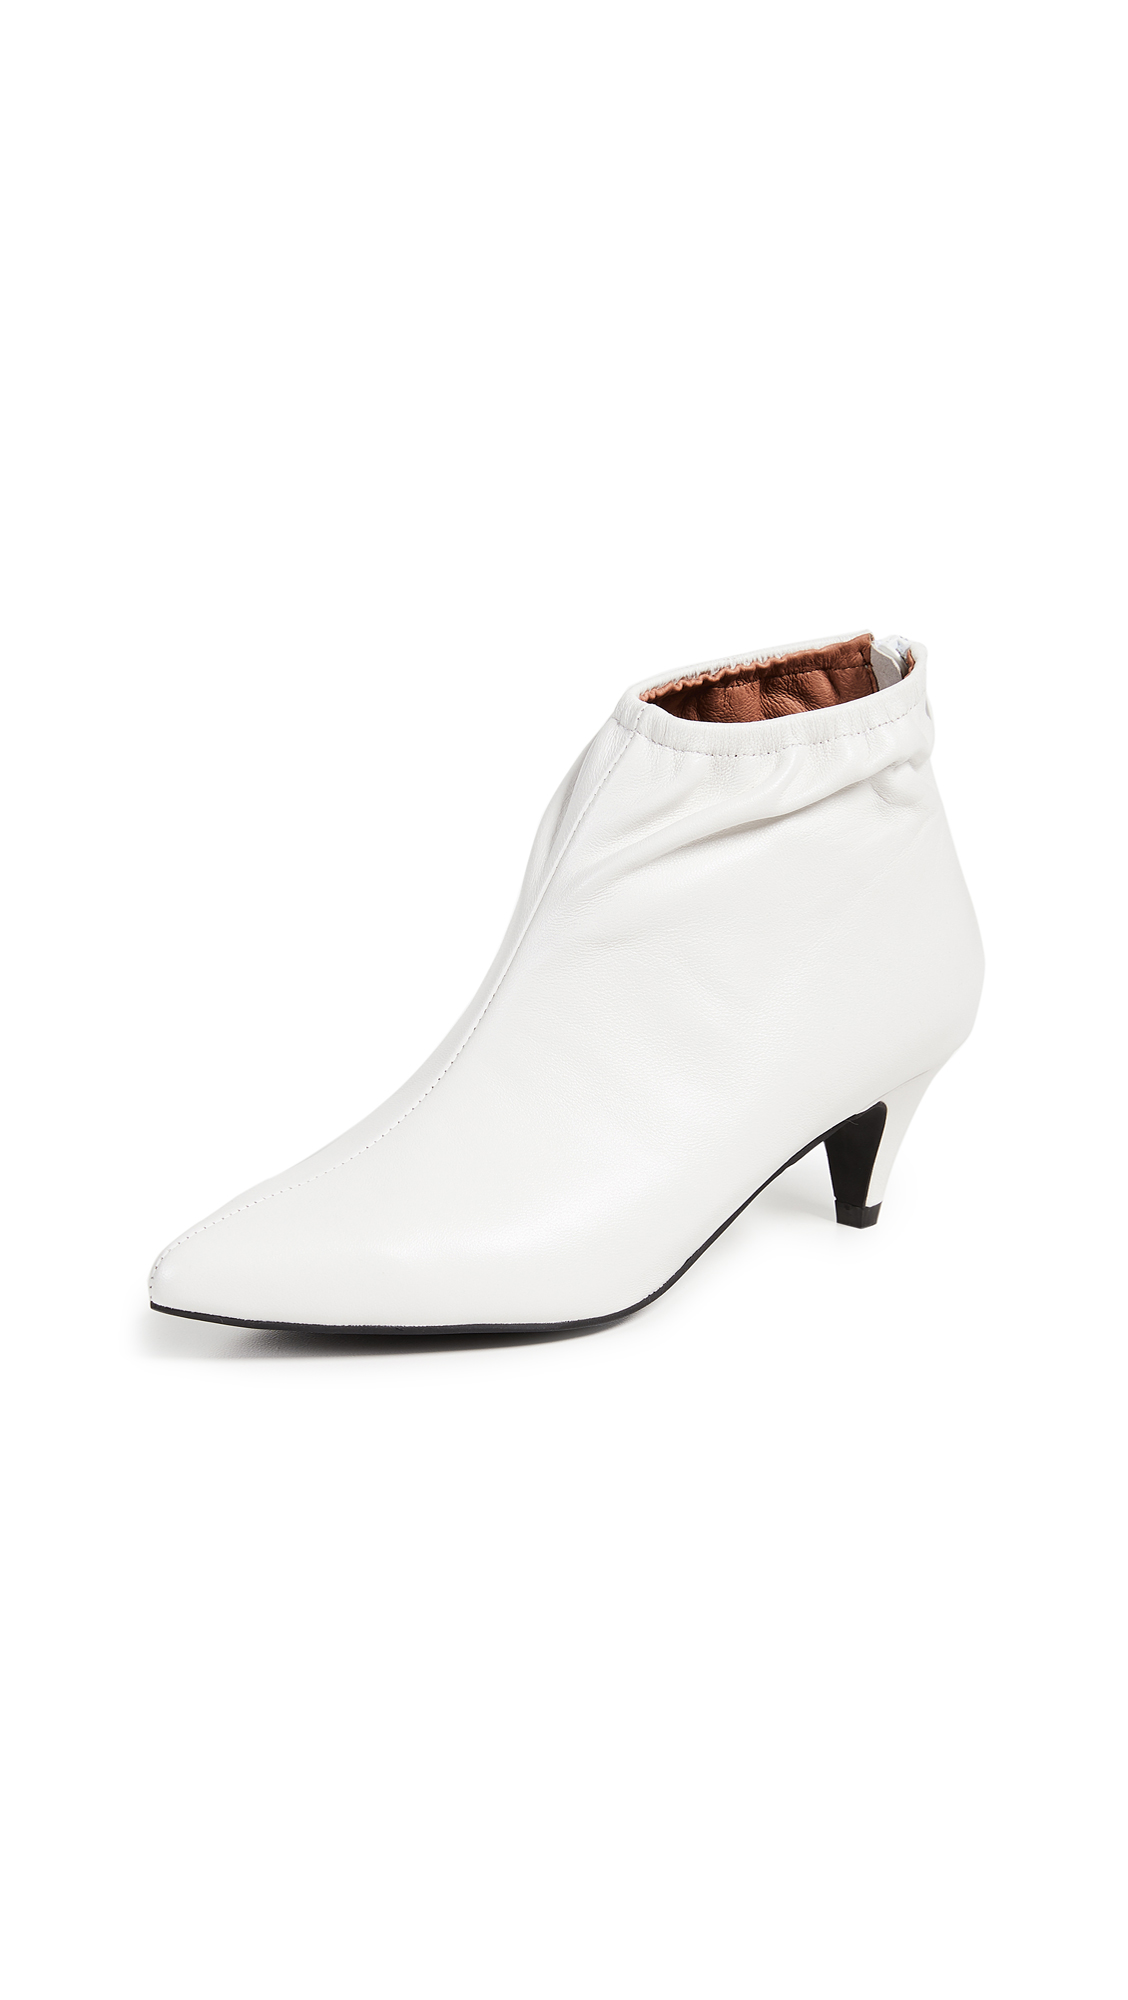 Jeffrey Campbell Zosia Low Heel Booties - White